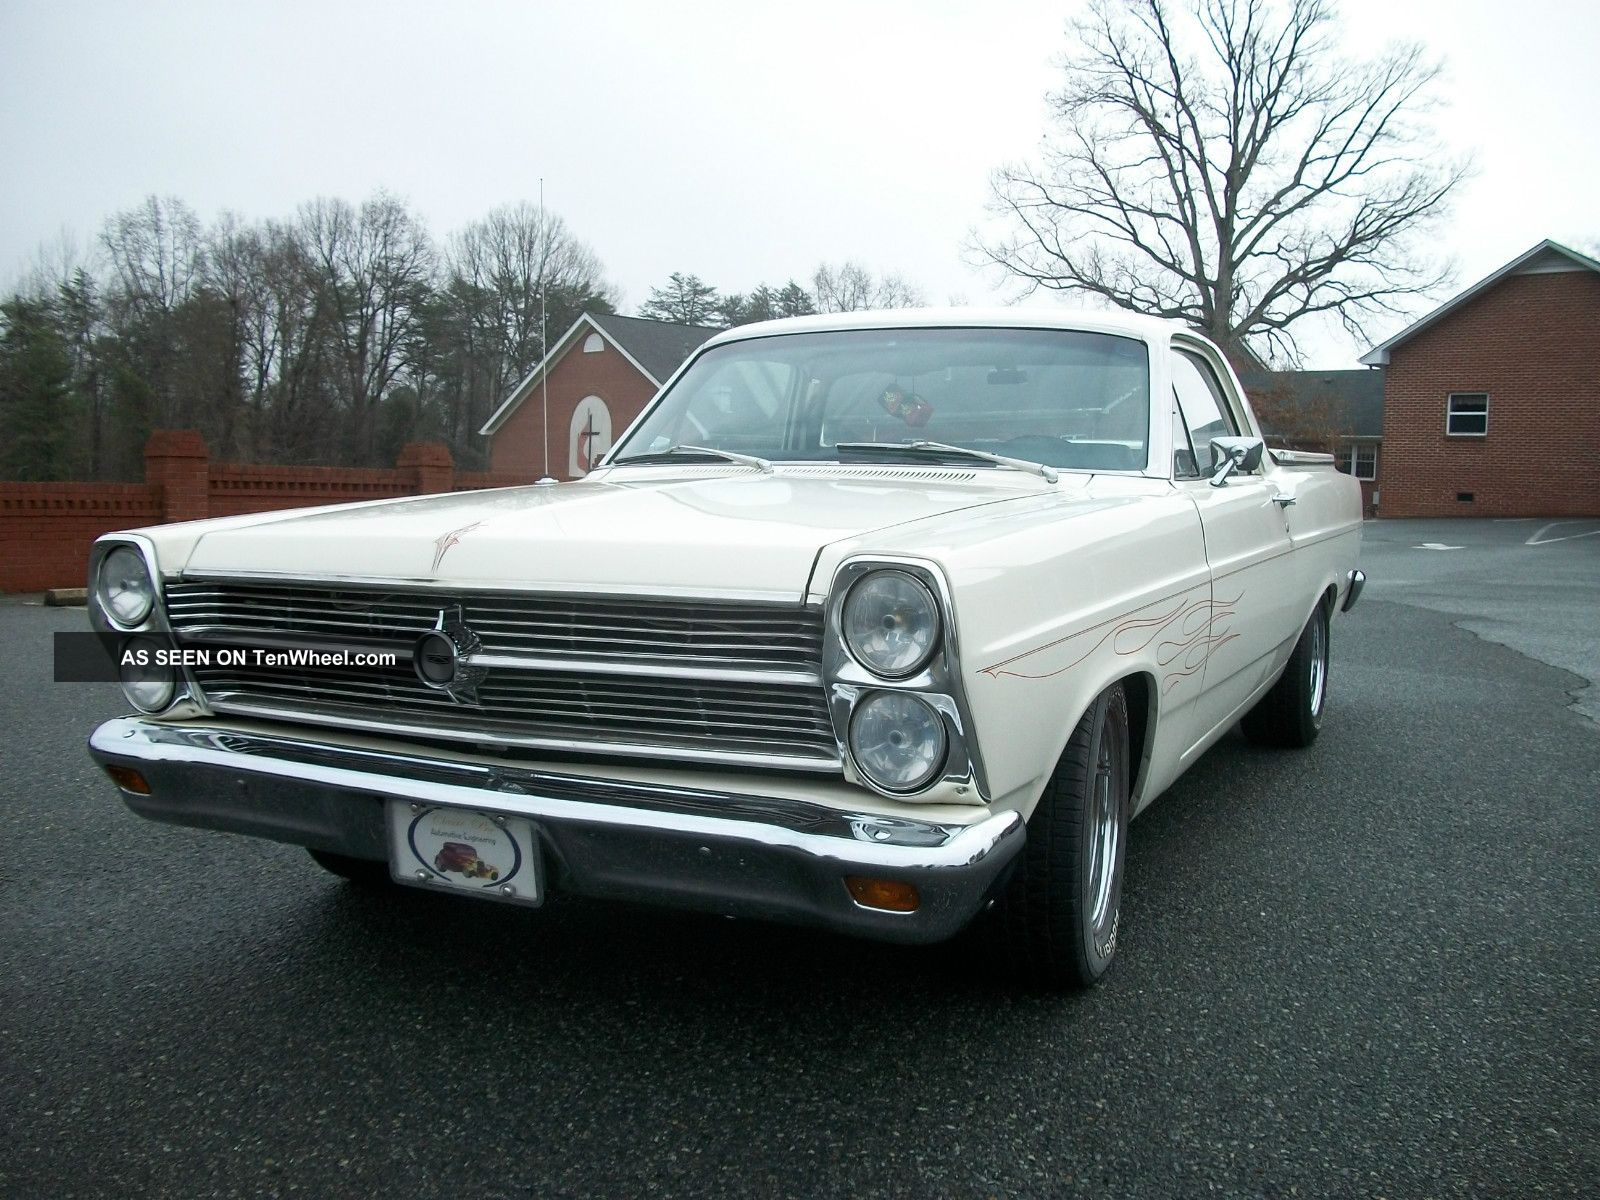 1967 Ford Ranchero besides 1964 Ford Falcon Rear Drum Brakes furthermore 1963 Ford Fairlane Gas Tank besides Front Door Trim Panel moreover 1964 Ford Falcon Quarter Panels. on 1961 ford falcon ranchero parts